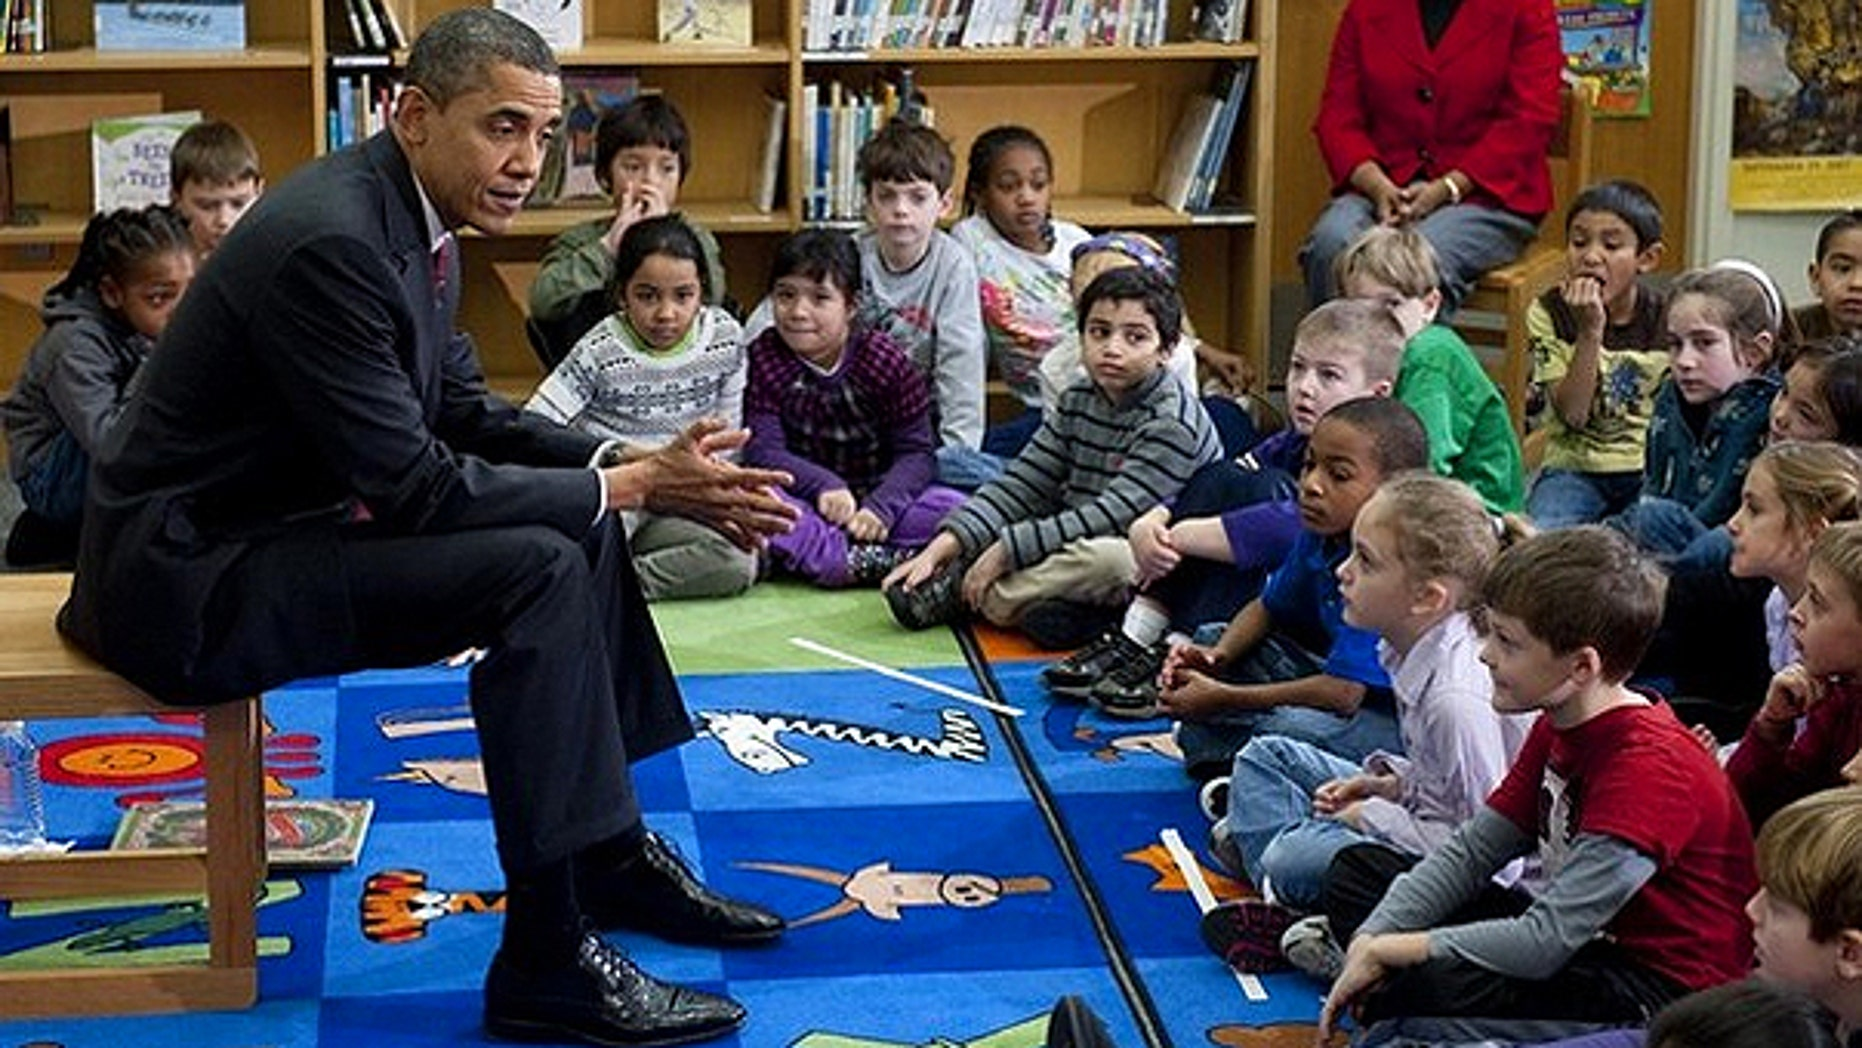 Dec. 17: President Obama talks with students after reading the book 'Twas the Night Before Christmas,' at Long Branch Elementary School in Arlington, Virginia.